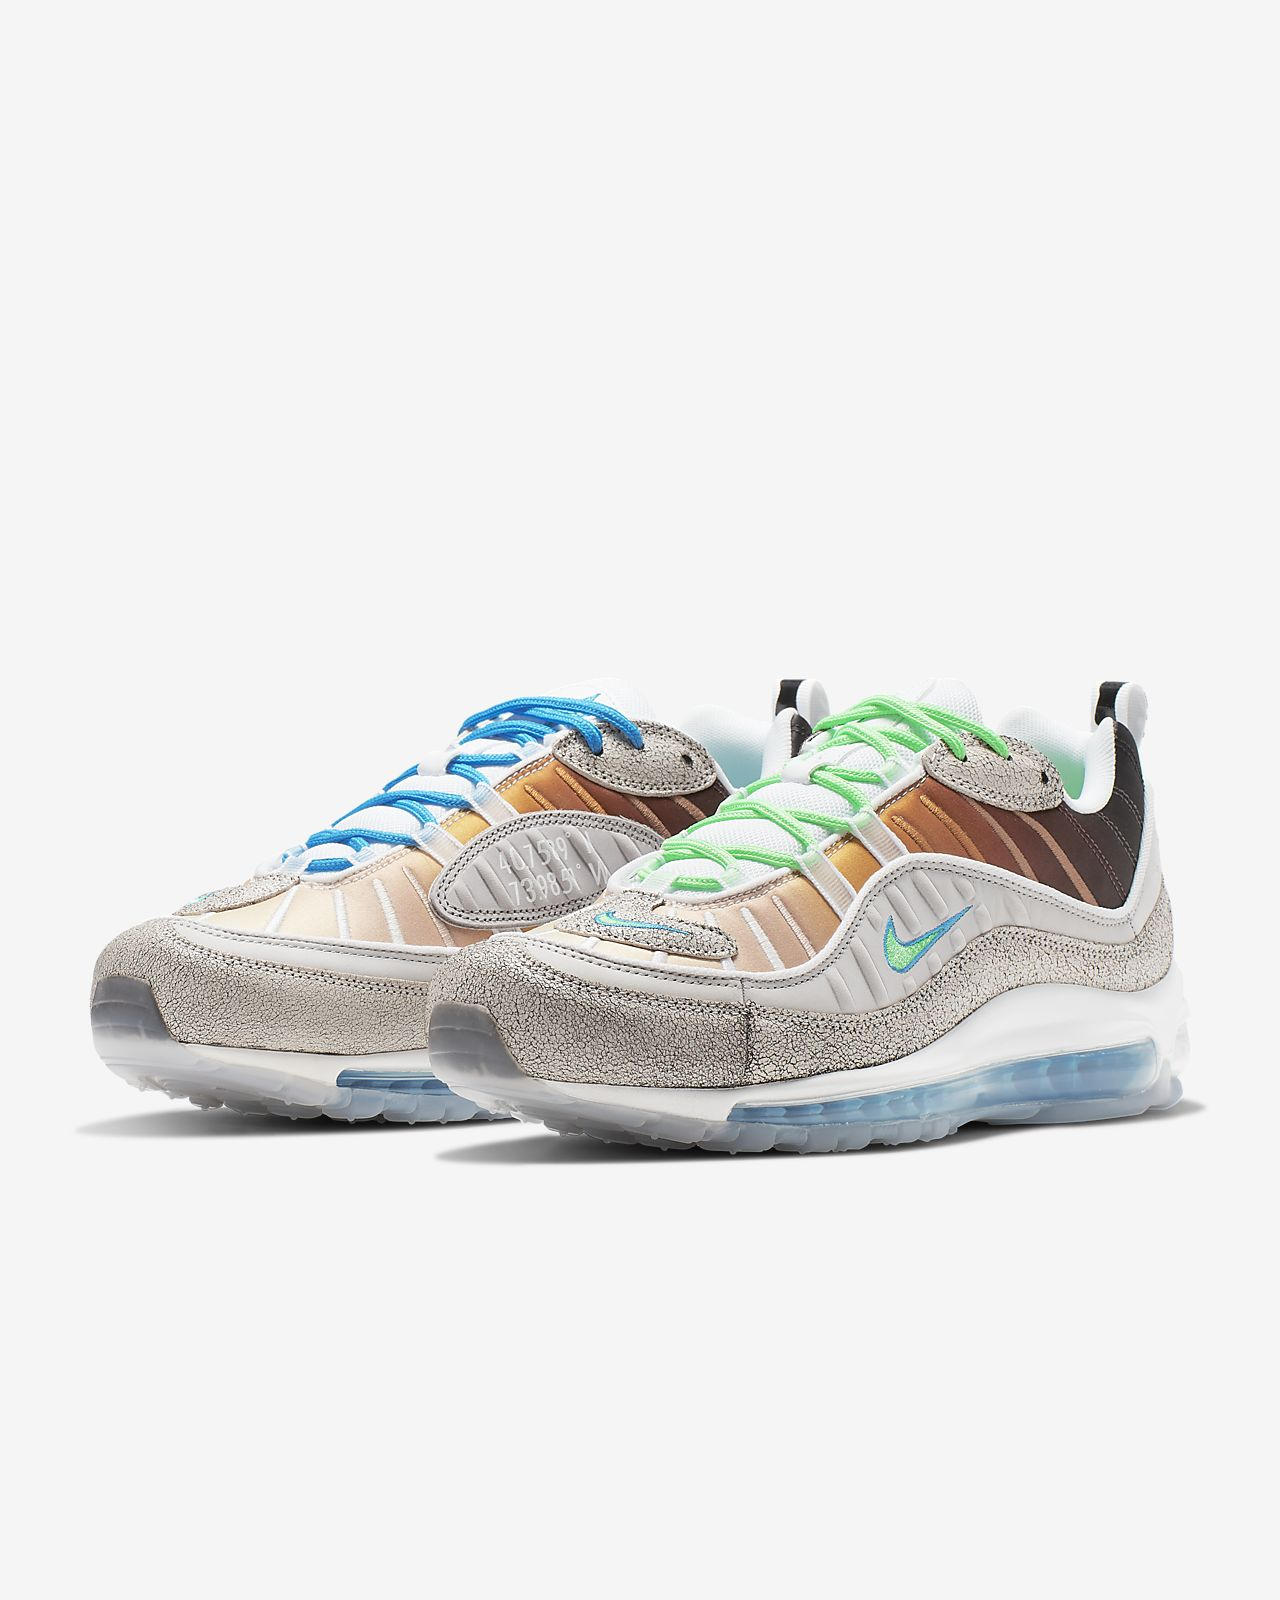 new concept 55359 a932b Nike Air Max 98 On Air Gabrielle Serrano Shoe